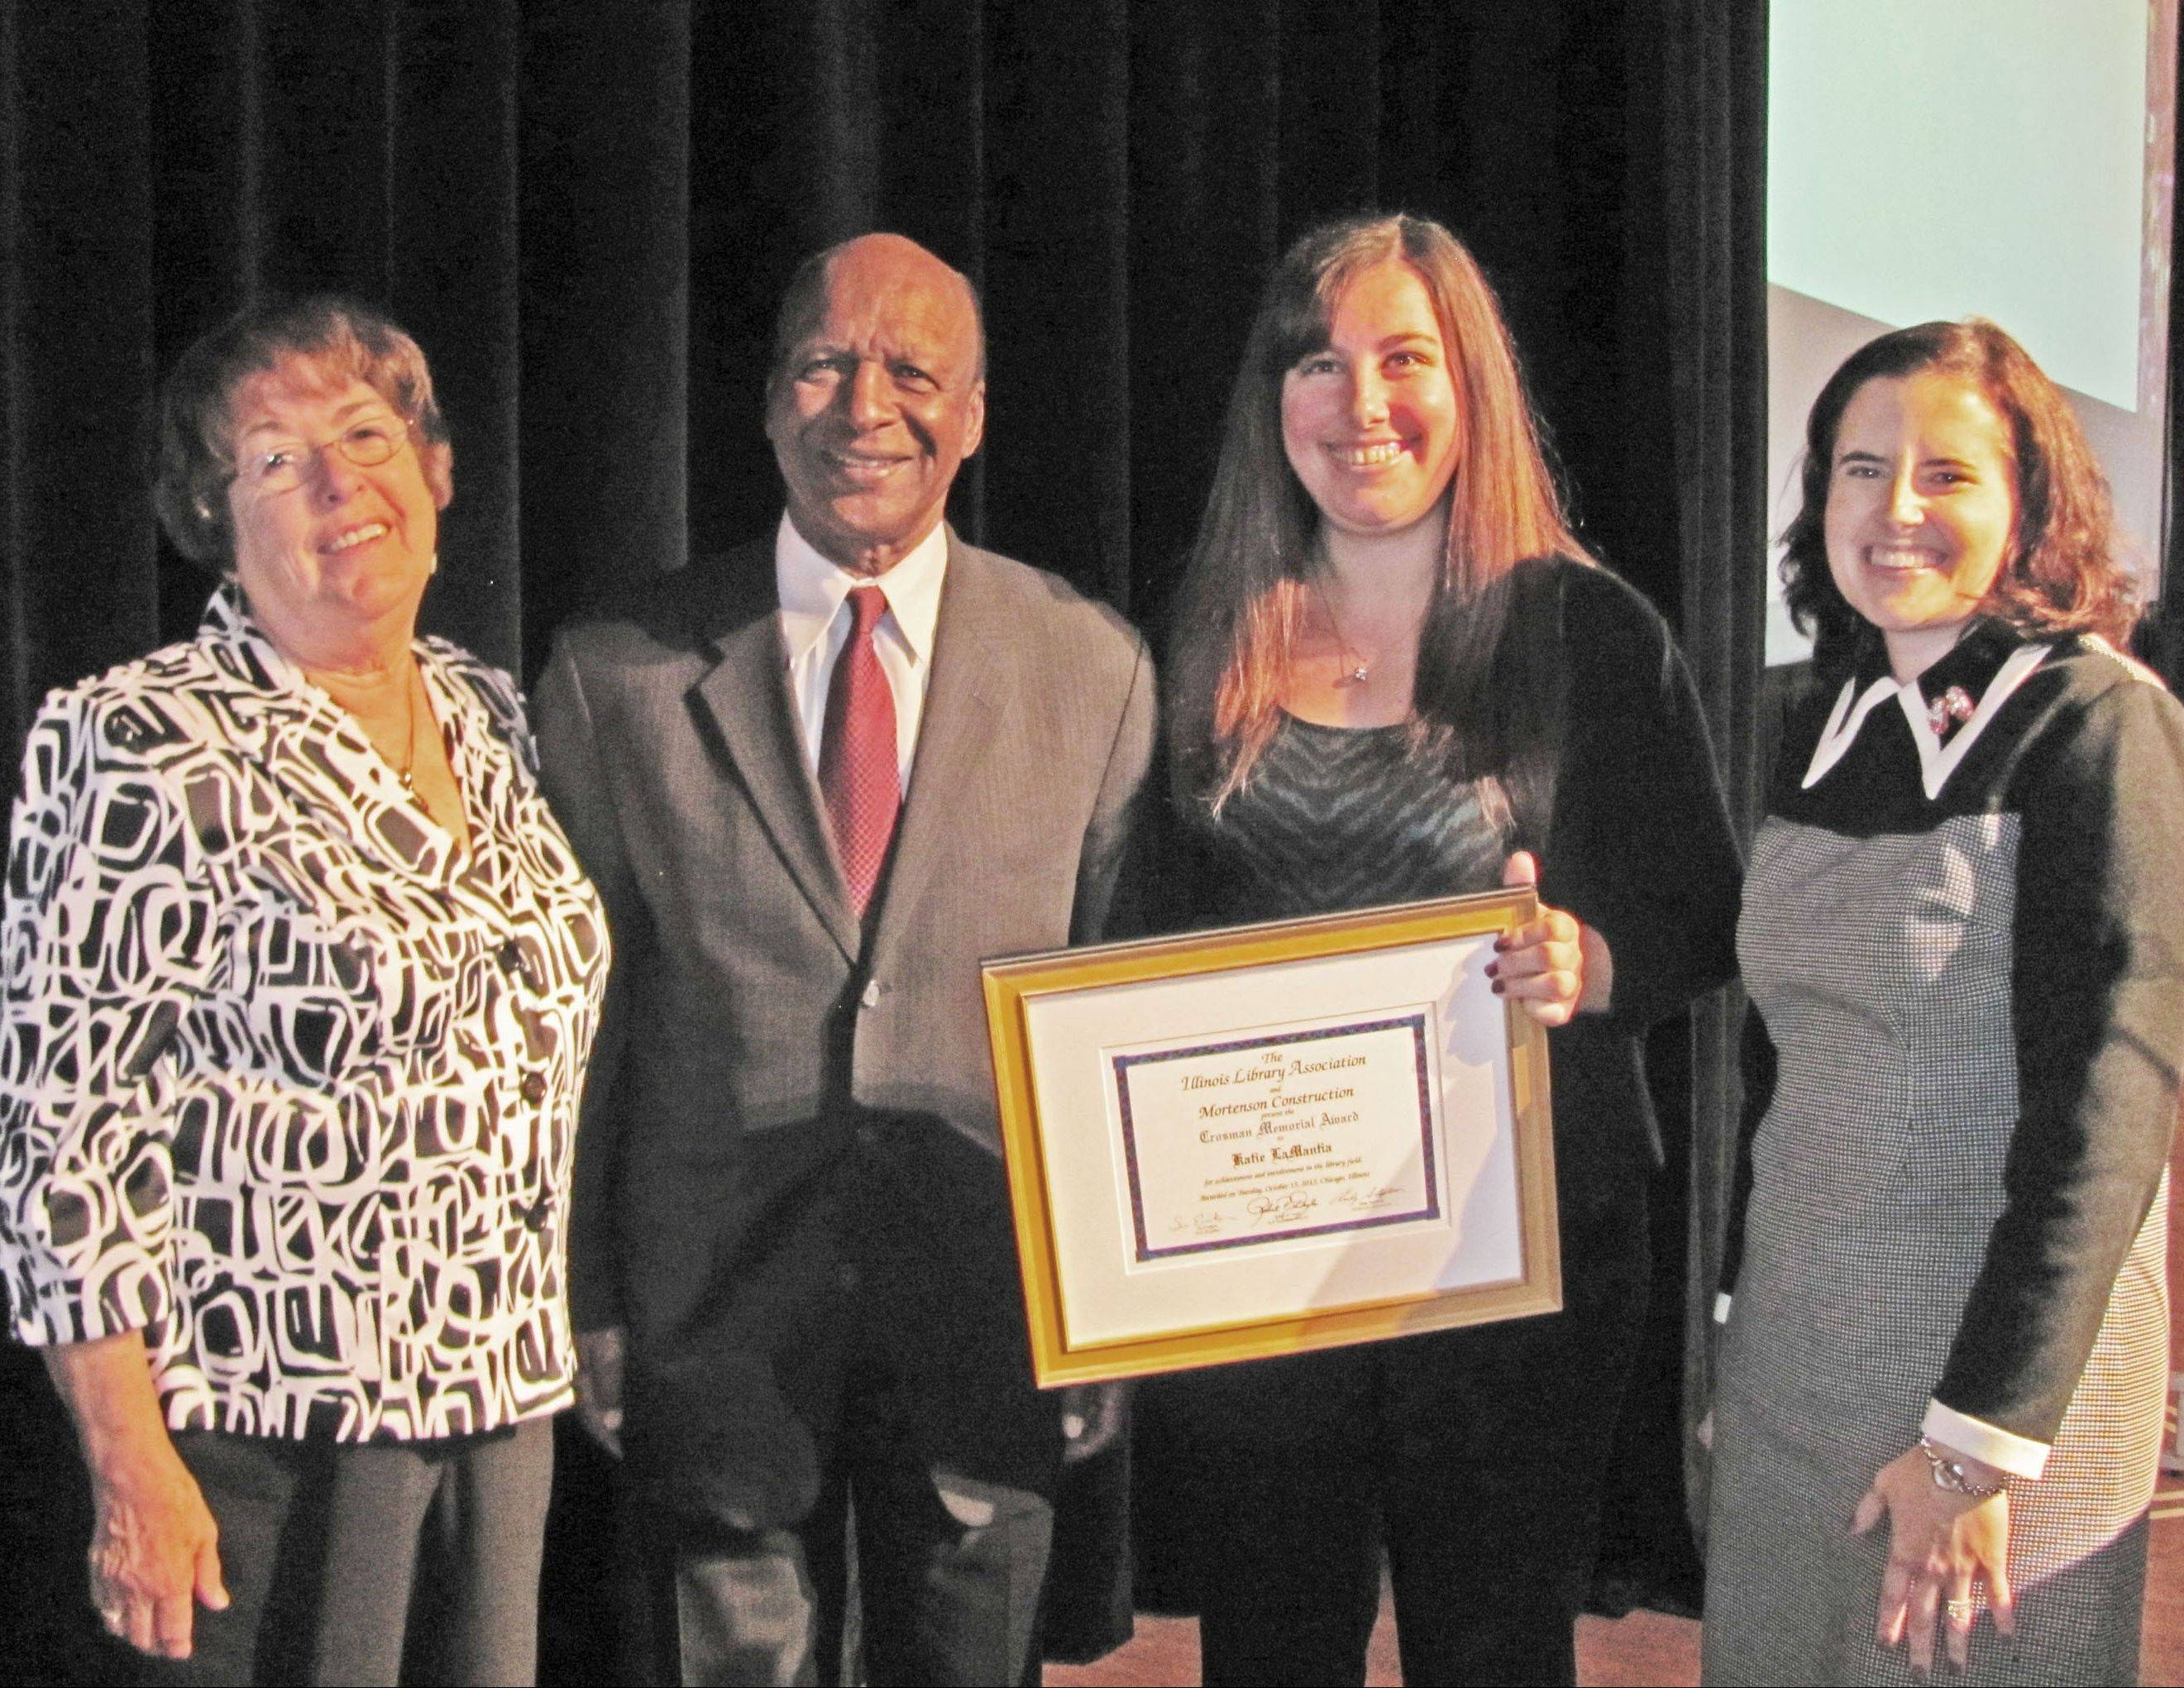 Pictured at the Illinois Library Association Awards presentation at Chicago's Navy Pier on Oct. 15, from left, are: Schaumburg Township District Library Literacy coordinator Pat Barch, Illinois Secretary of State Jesse White and Young Adult librarians Katie LaMantia and Amy Alessio.